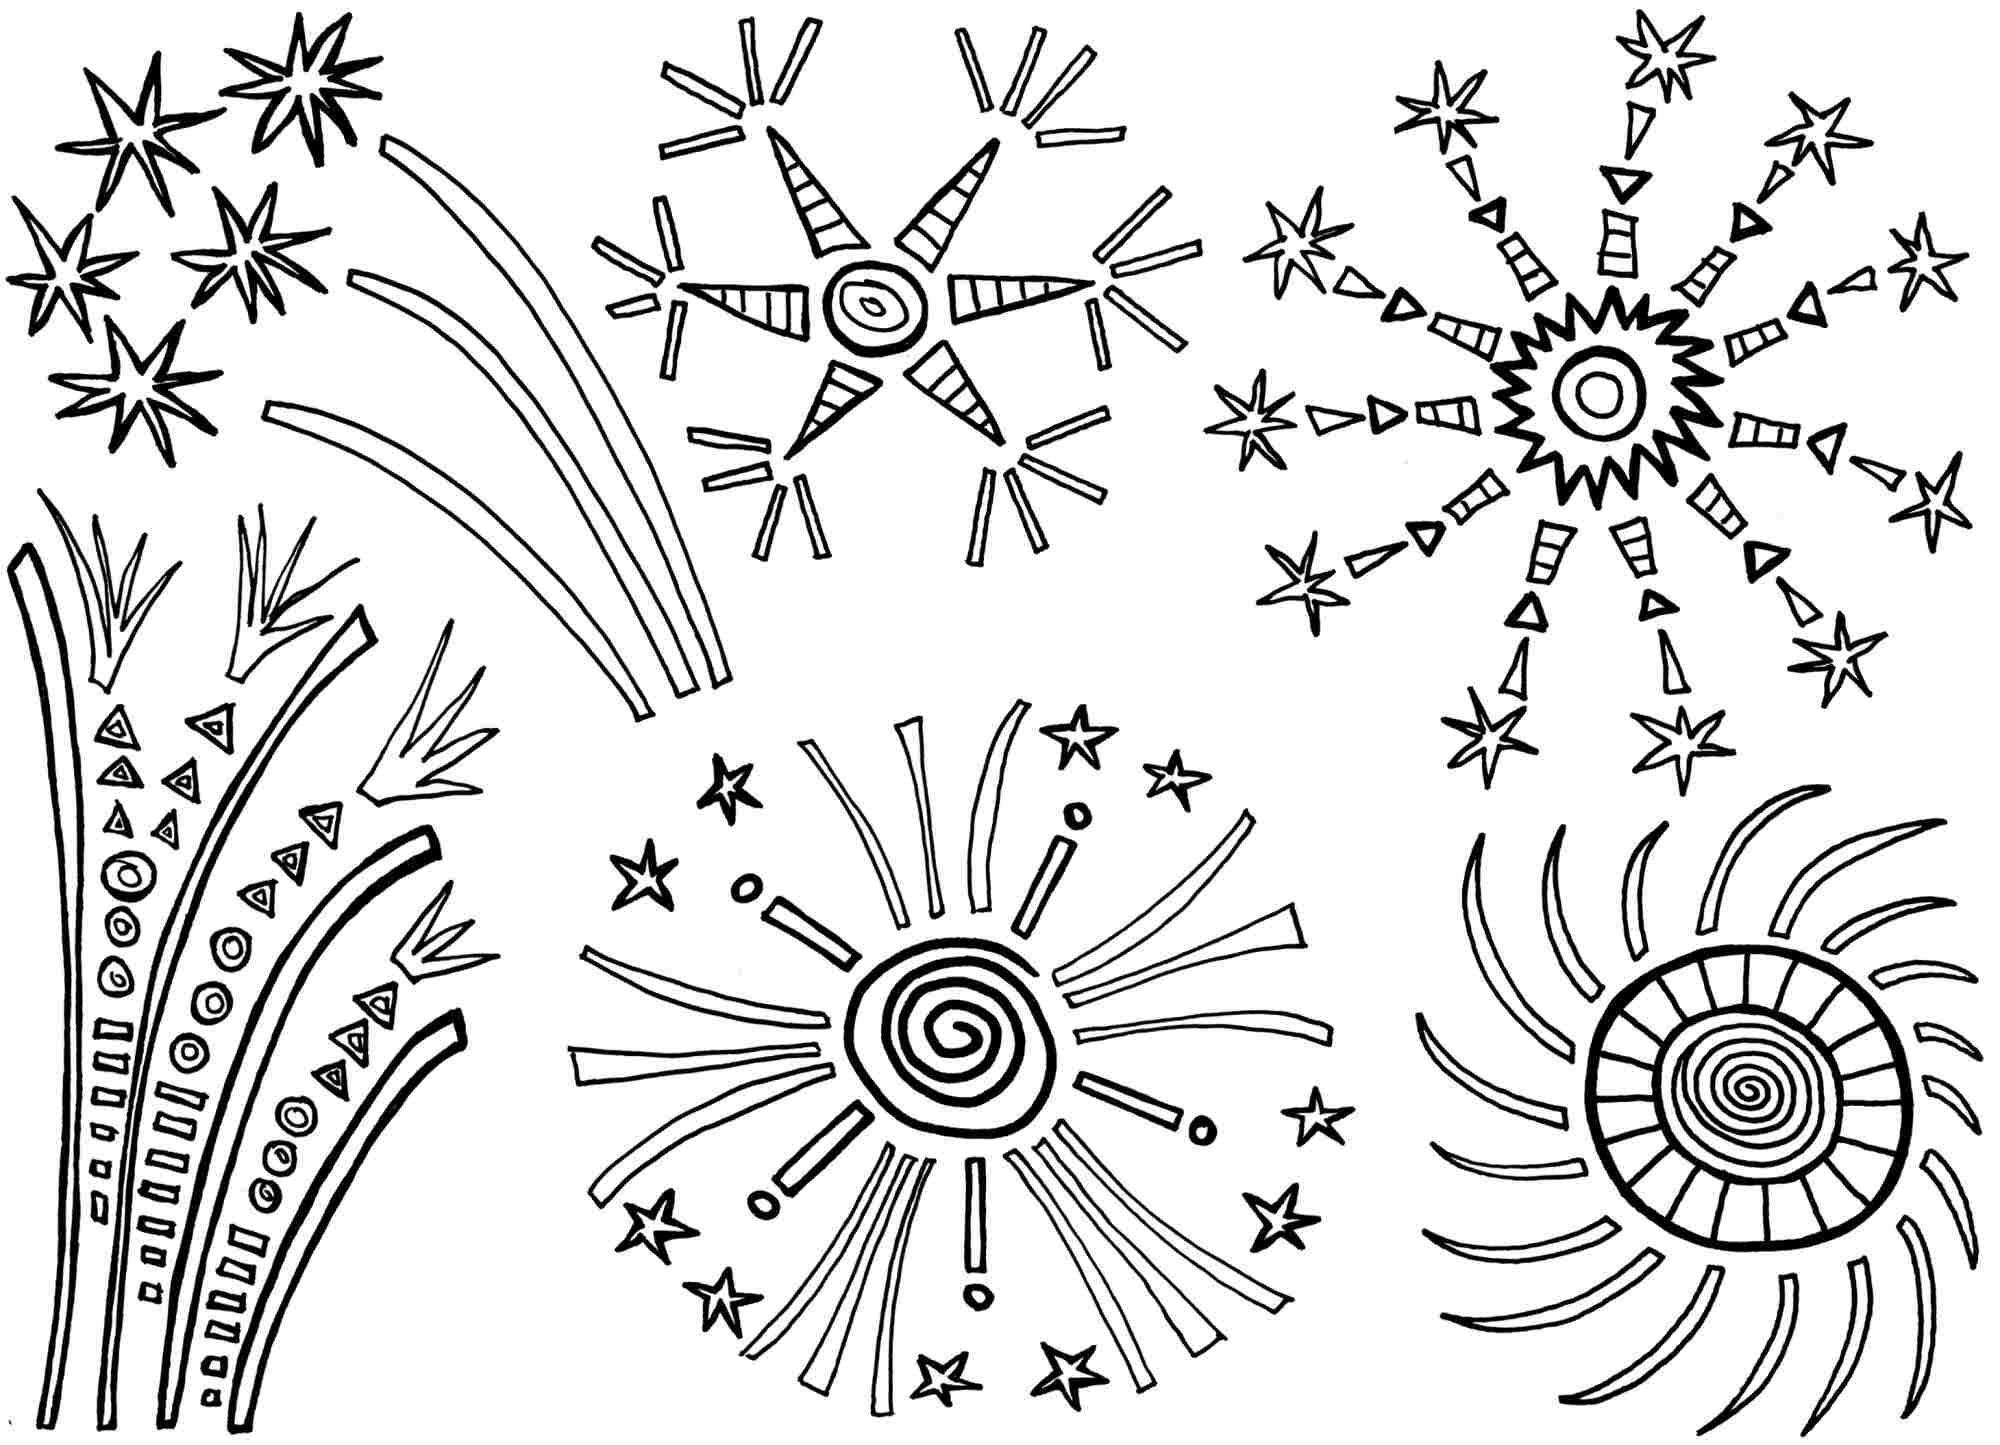 fireworks coloring page free printable fireworks coloring pages for kids page fireworks coloring